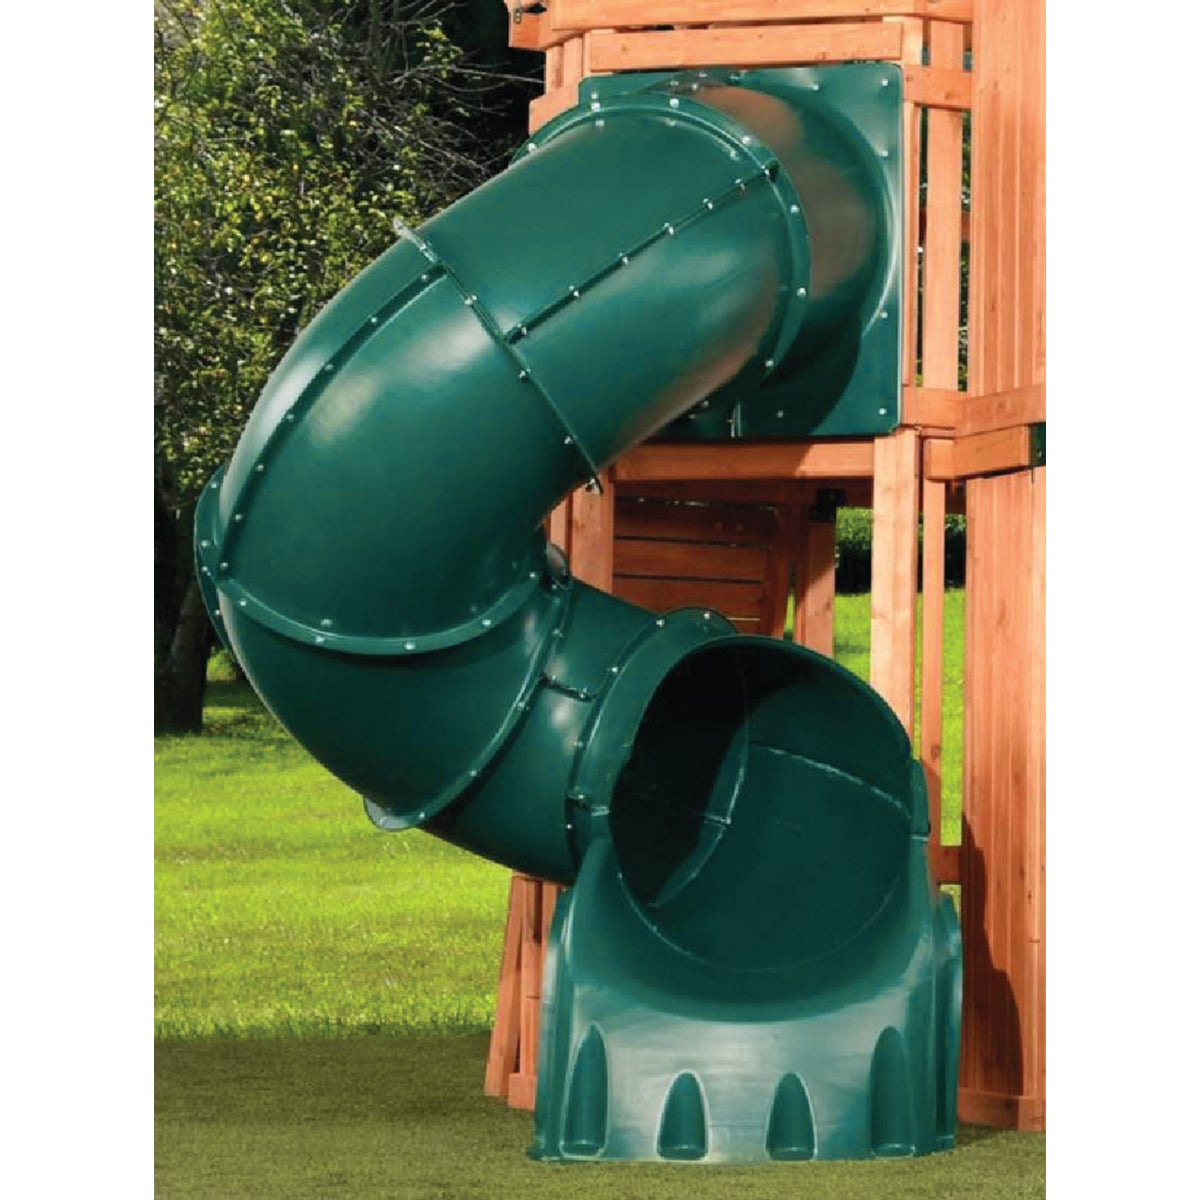 GRN 5' TURBO TUBE SLIDE - NE 4692-T by Swing N Slide Corp